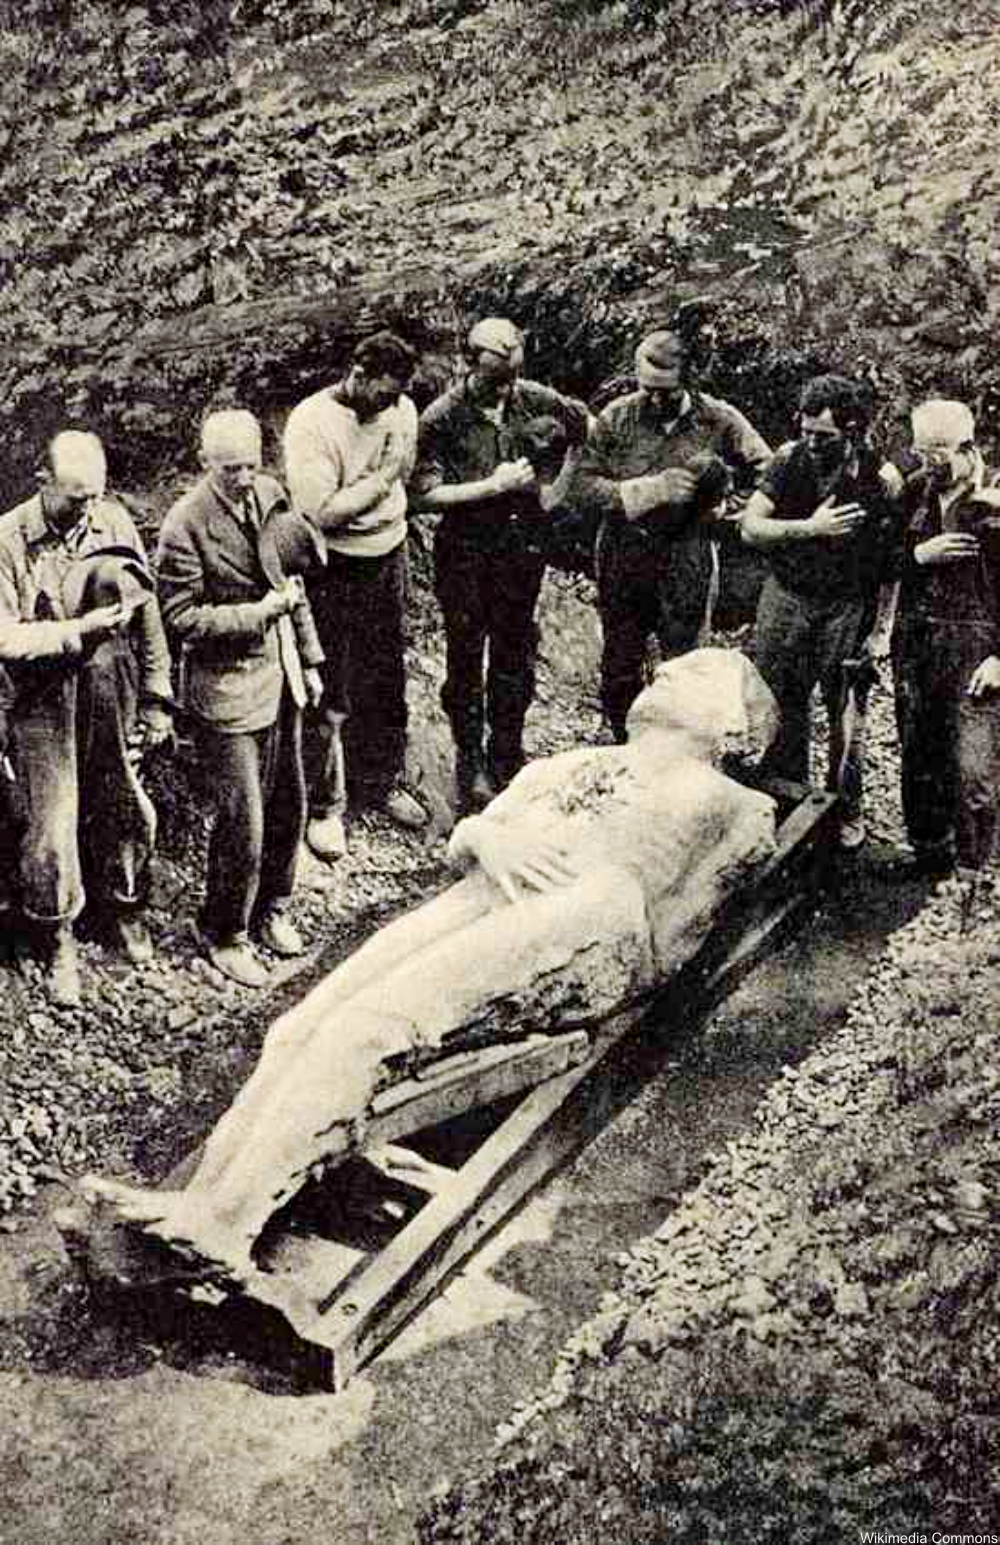 Excavation of the Cardiff Giant in 1869